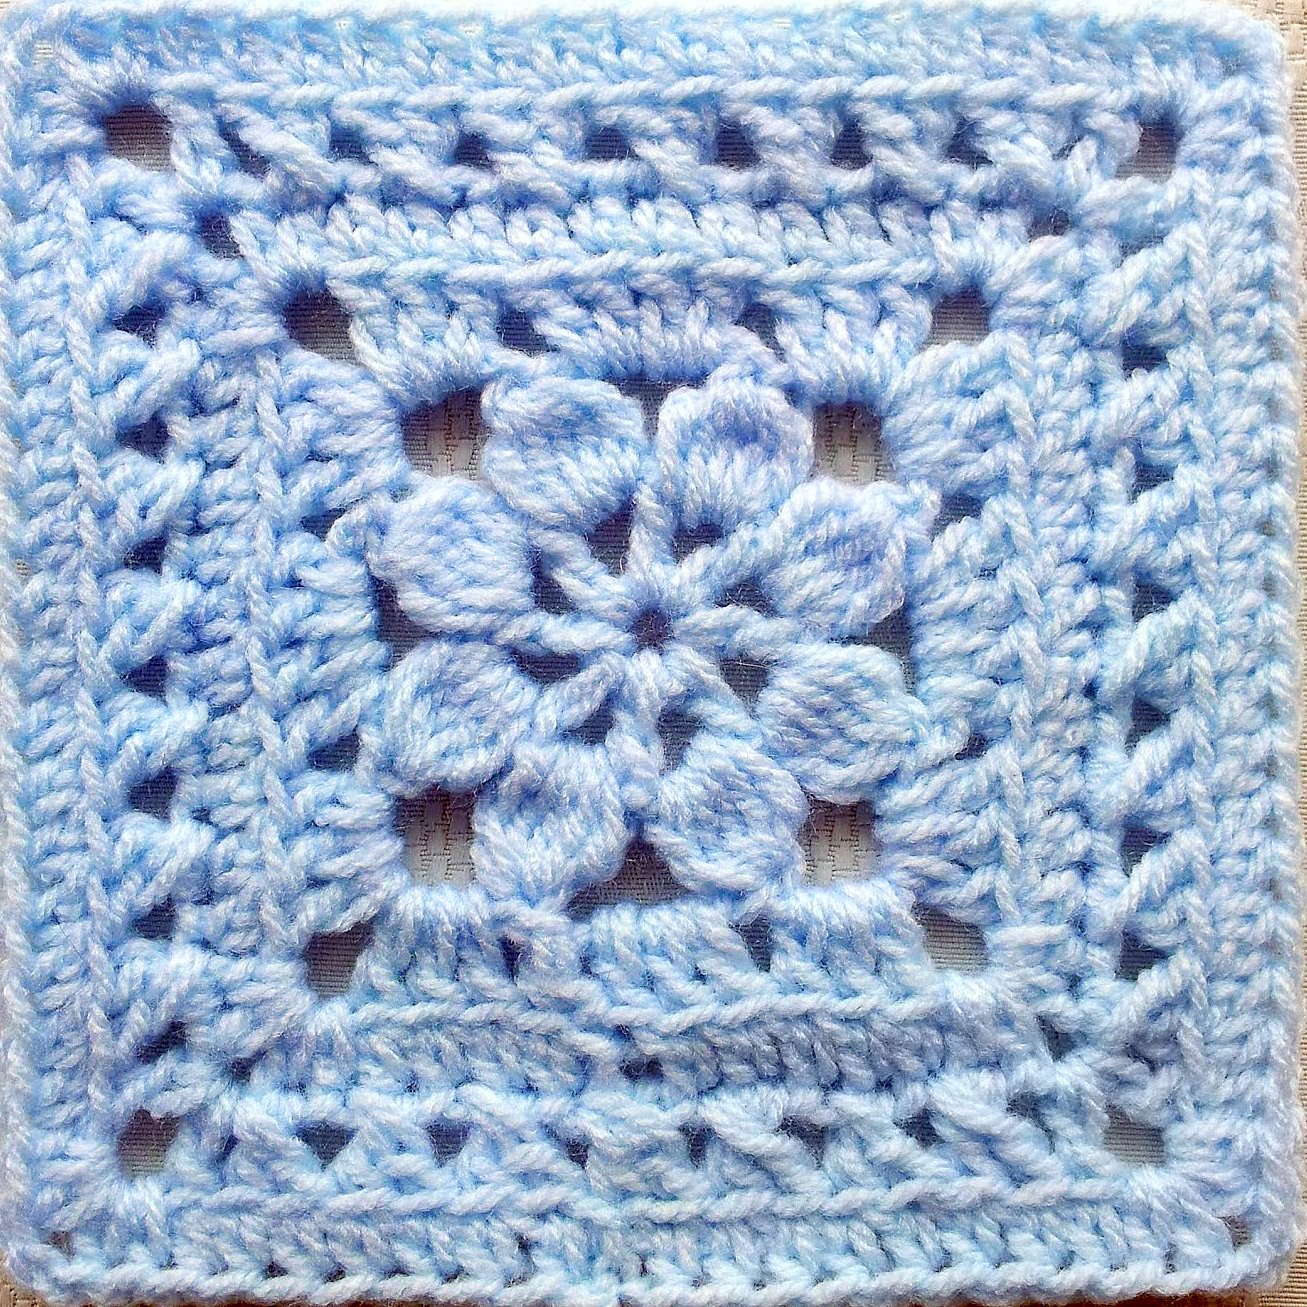 Crochet patterns on Pinterest Free Crochet, Granny ...